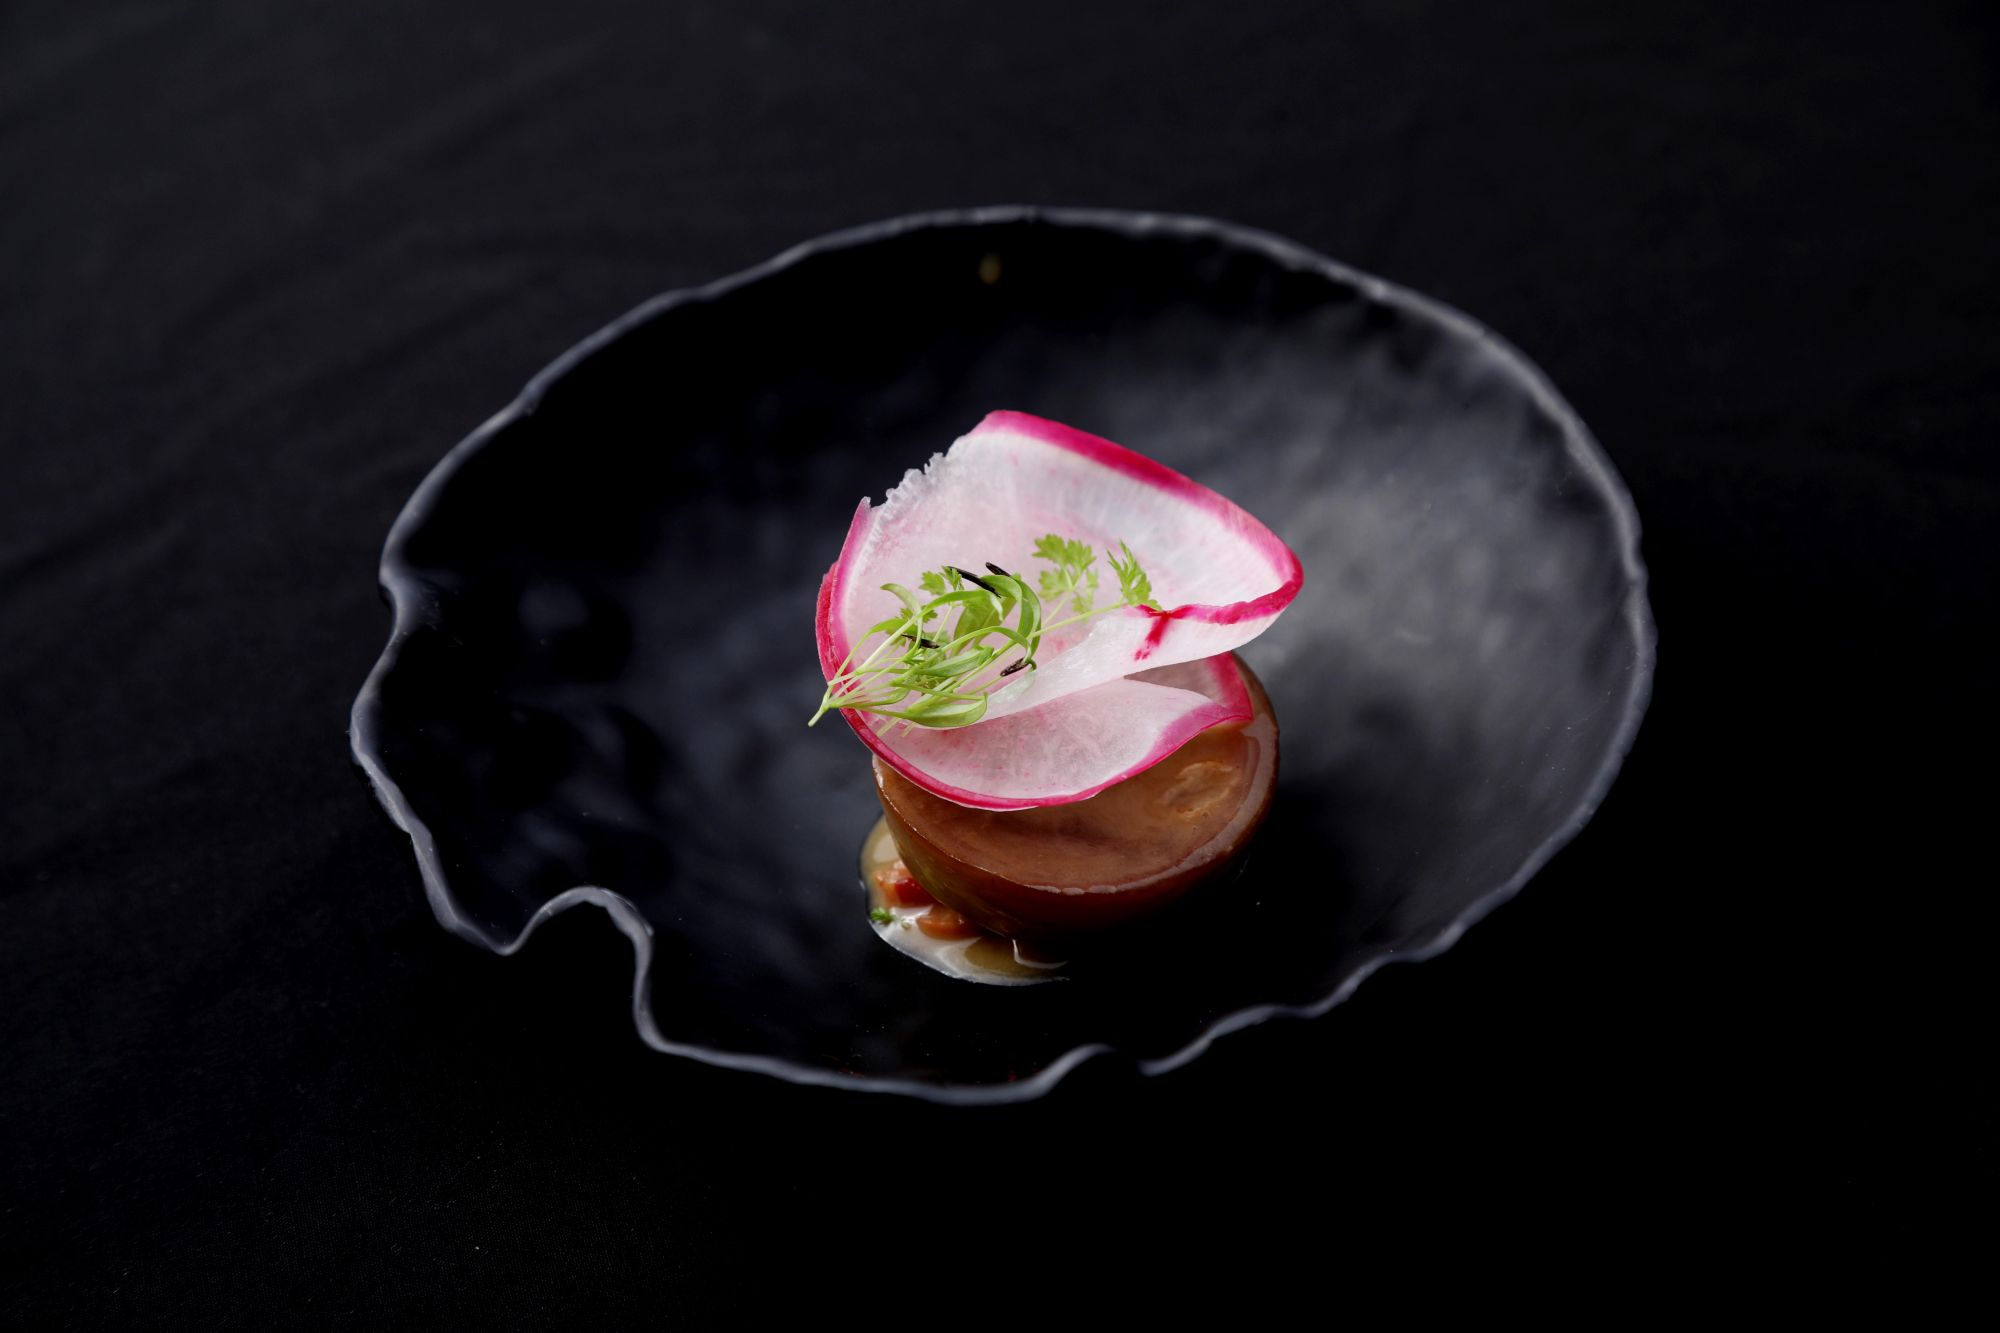 Singapore's Top Chefs Share New Ways To Savour Japanese Produce From Gunma